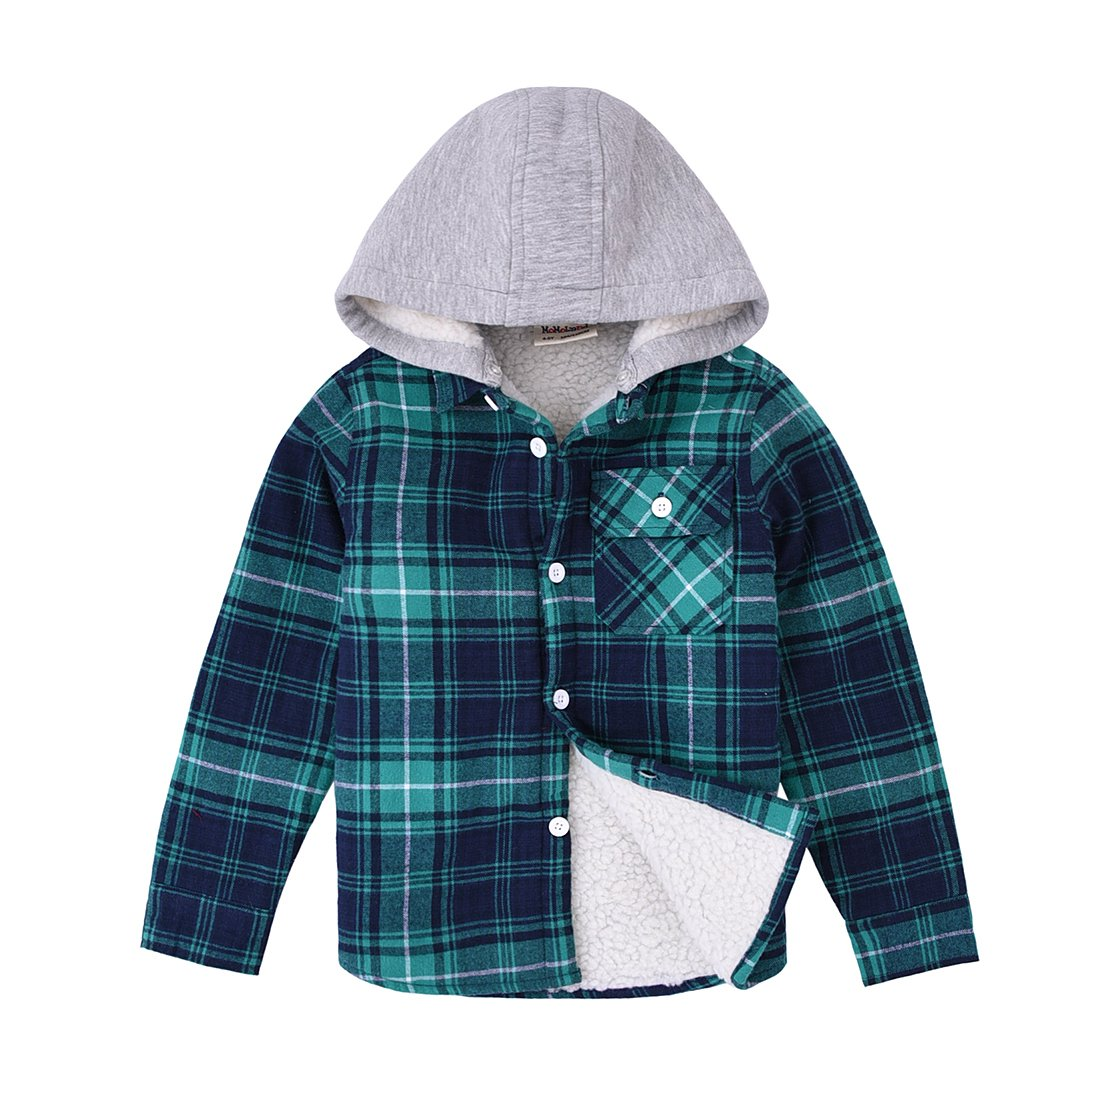 MOMOLAND Little Boys Long Sleeve Sherpa Lined Flannel Shirt Jacket with Hood (4-5Y, Green and Navy)